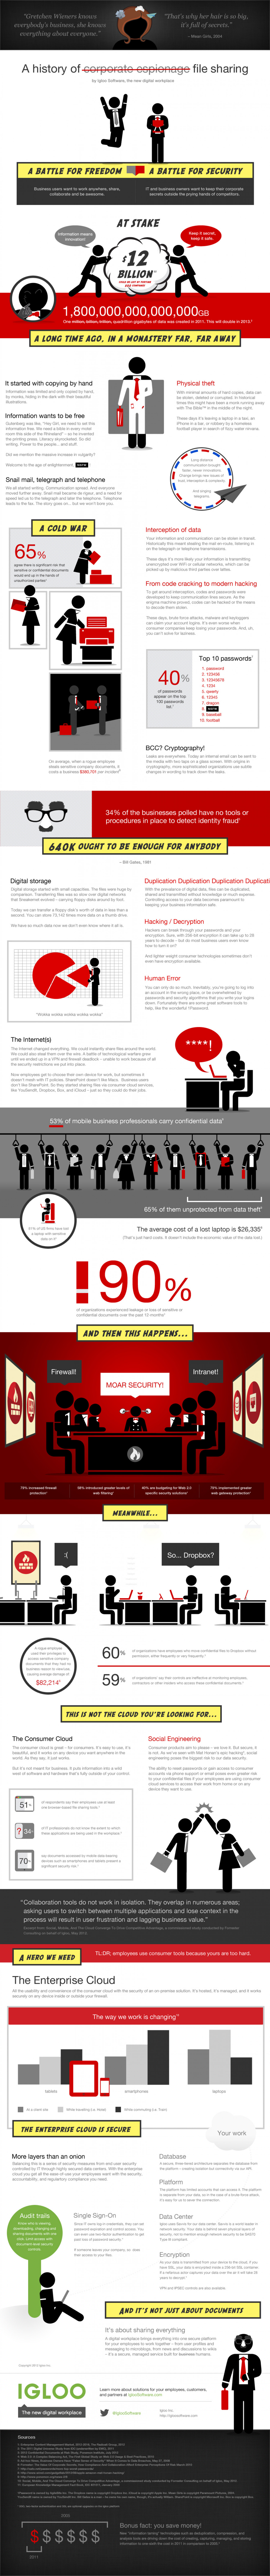 The History of File Sharing from Igloo Infographic